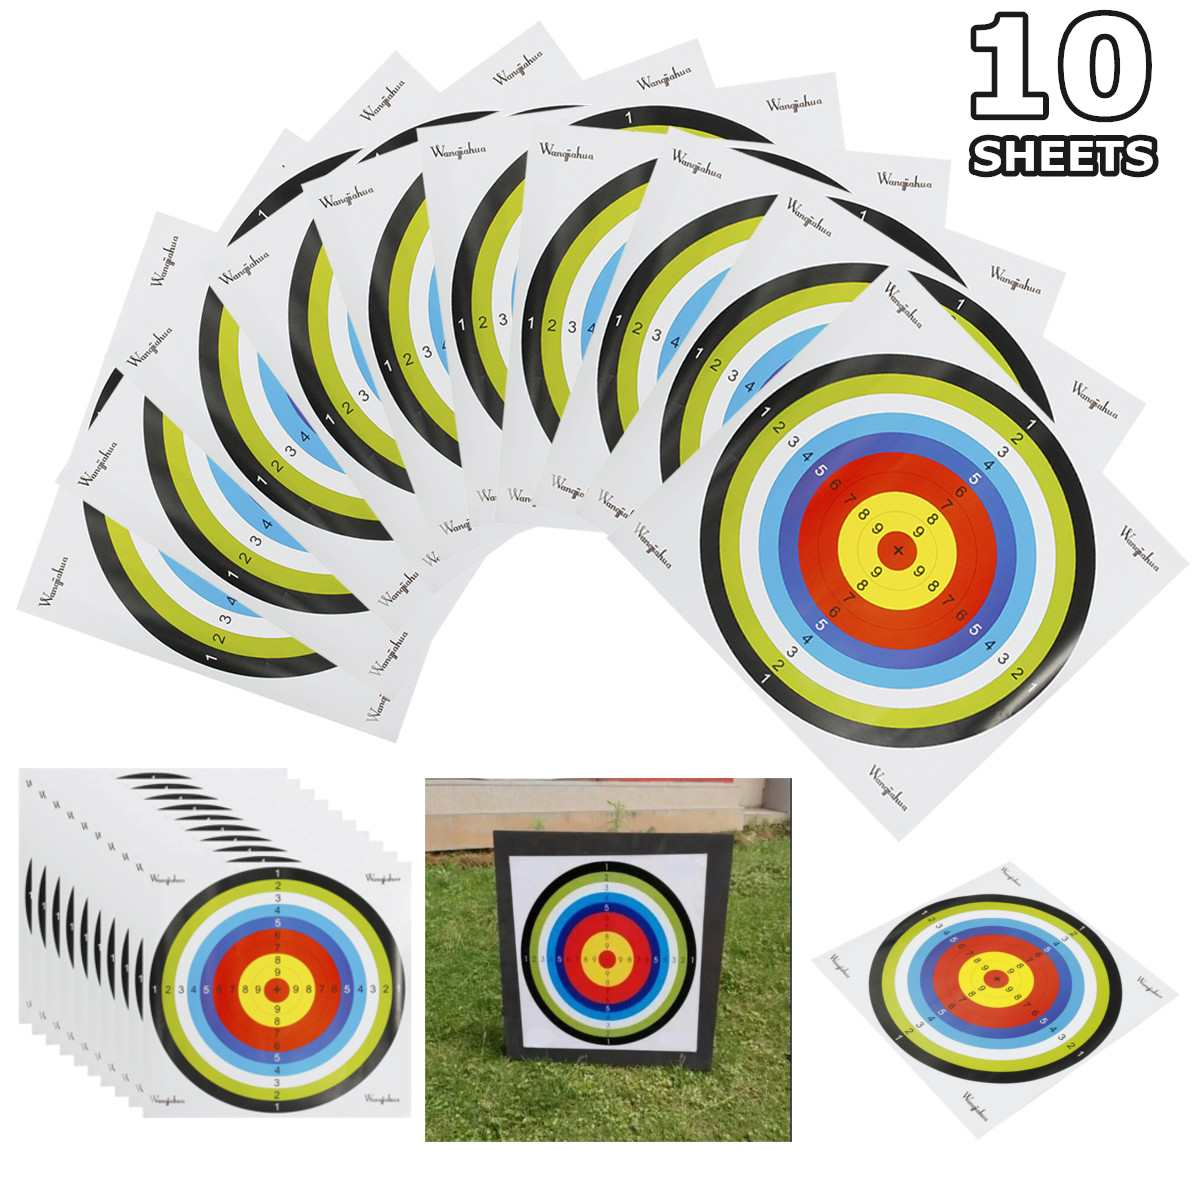 Professional 10 Sheets Shooting Target Paper Archery Shoot Targets Bow Arrow Gauge Indoor Target Paper Hunting Training Practice